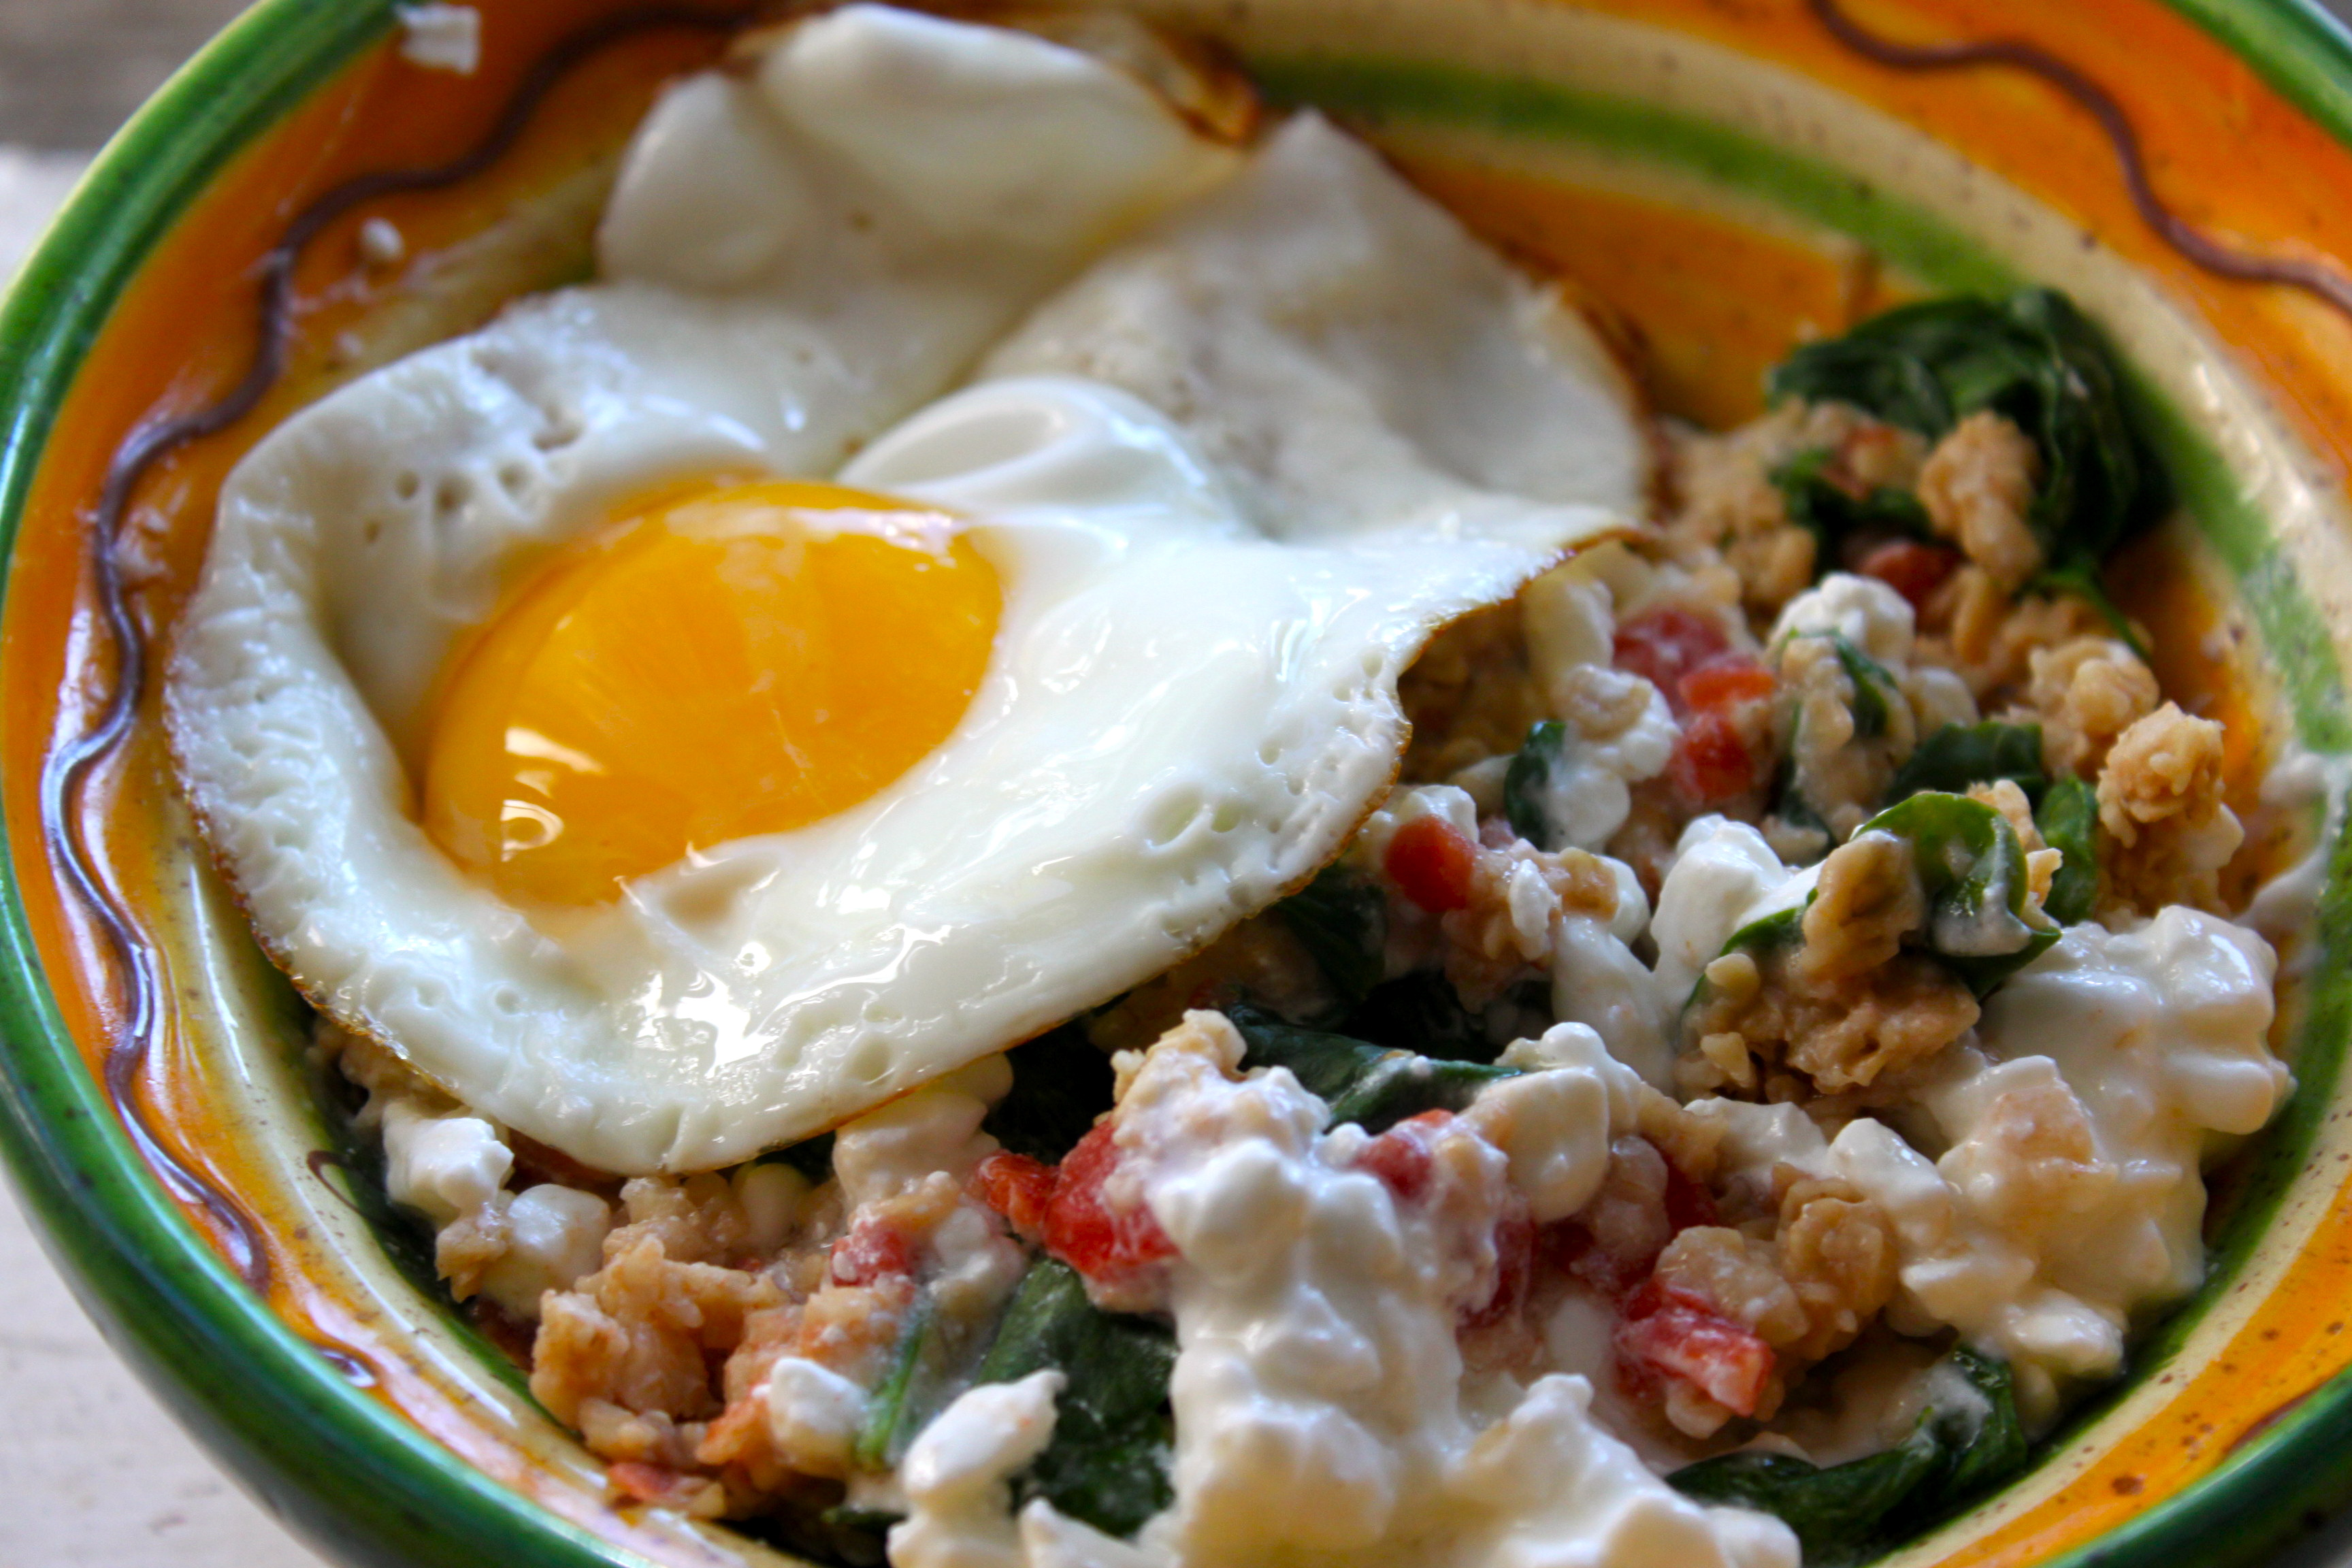 Captivating Savory Oats With Tomato, Spinach And Cottage Cheese